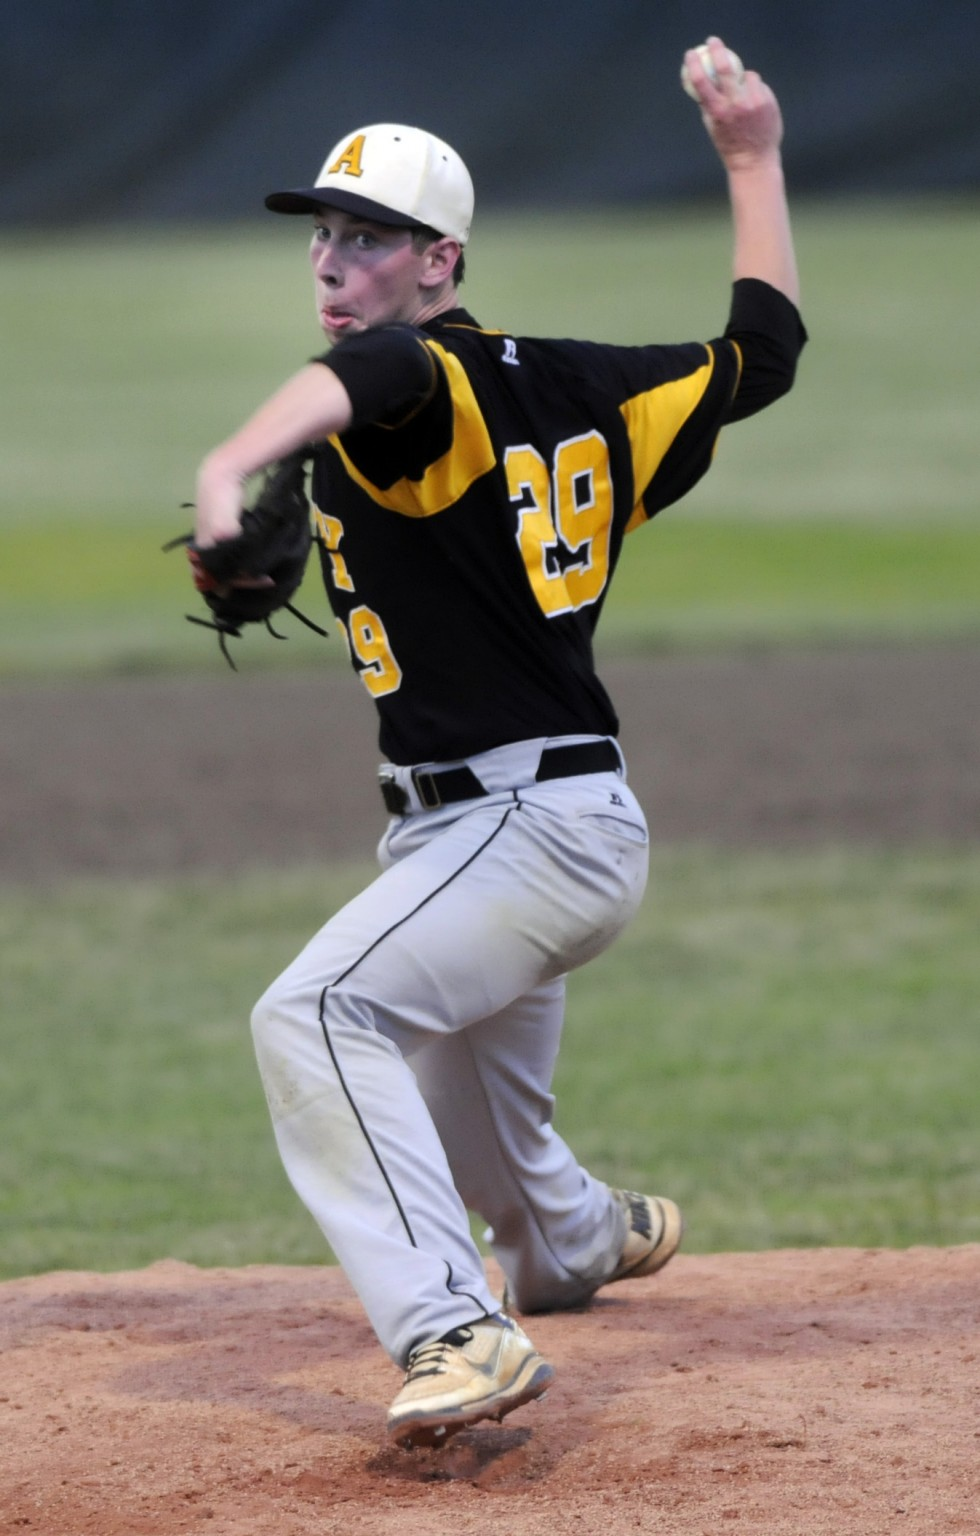 Amity's Michael Concato, pitched a complete game two hitter to lead his team to the championship. Amity High School beat Southington High School in the CIAC Class LL Baseball Championship in a game played at Palmer Field in Middletown by a score of 4 to 0.